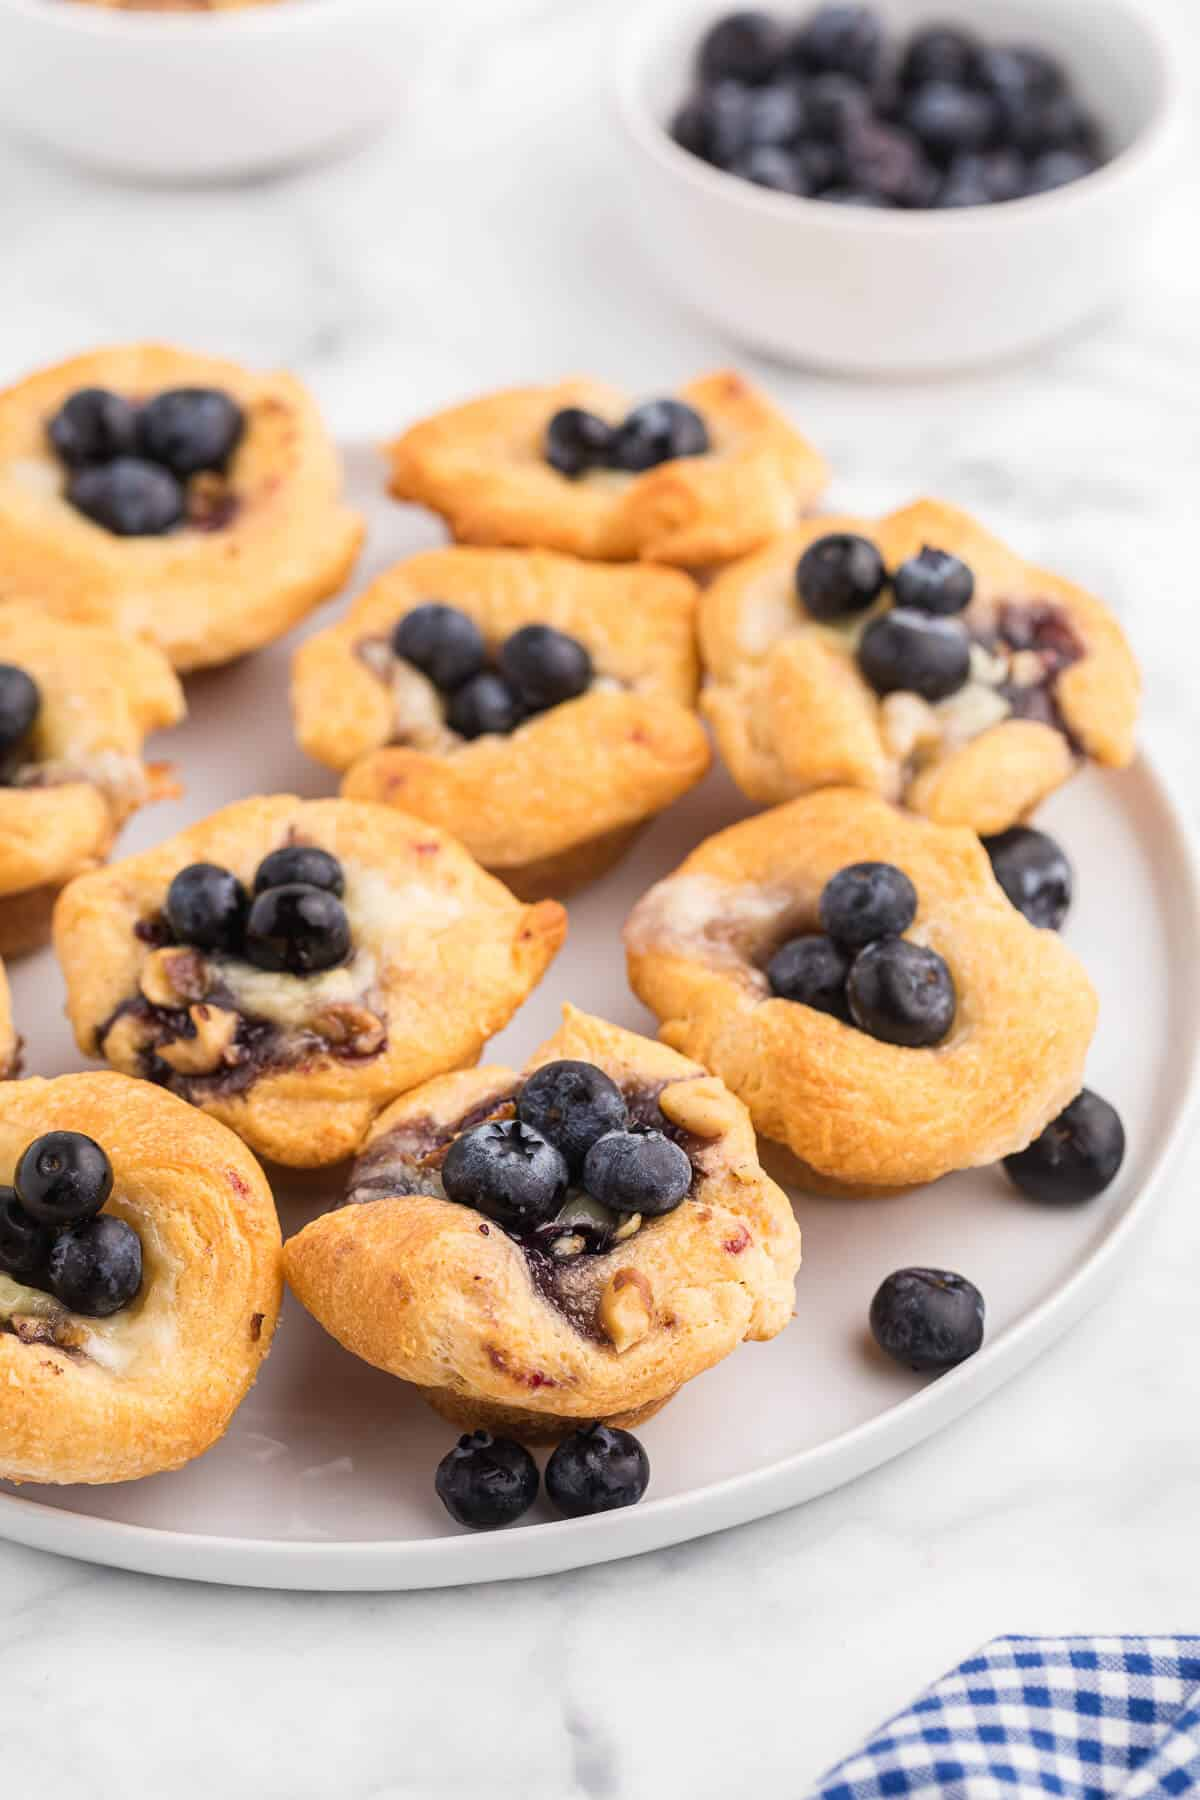 Blueberry Cheese Tarts - Sweet and savory combine in these delicate tarts! Serve as a sweet appetizer or a mini dessert.